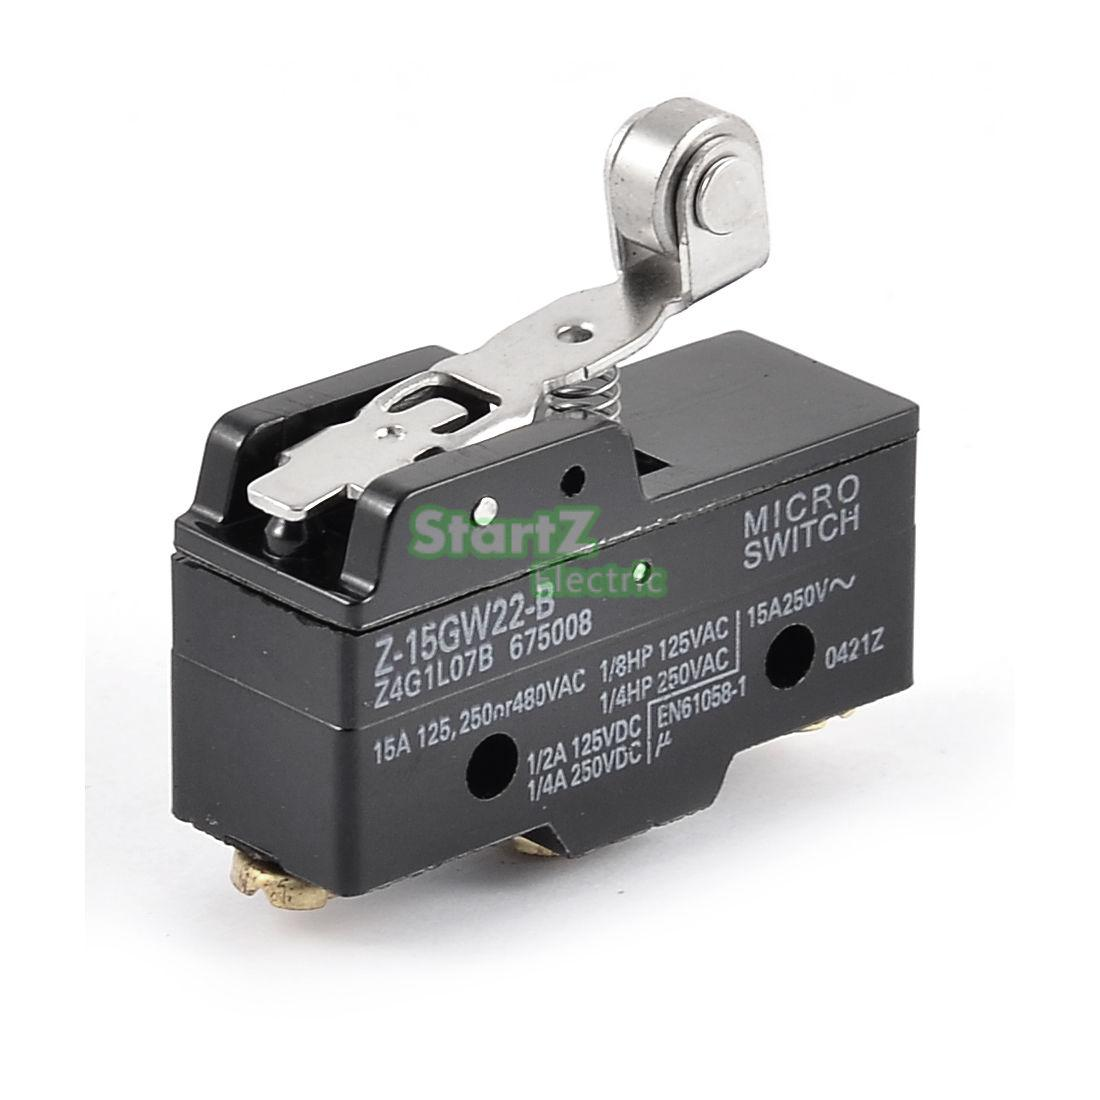 Short Roller Hinge Normally Open/Close Micro Lever Limit Switch Z-15GW22-B 5pcs safety micro limit switch v 15 1c25 roller lever snap action 250v 16a s08 drop ship